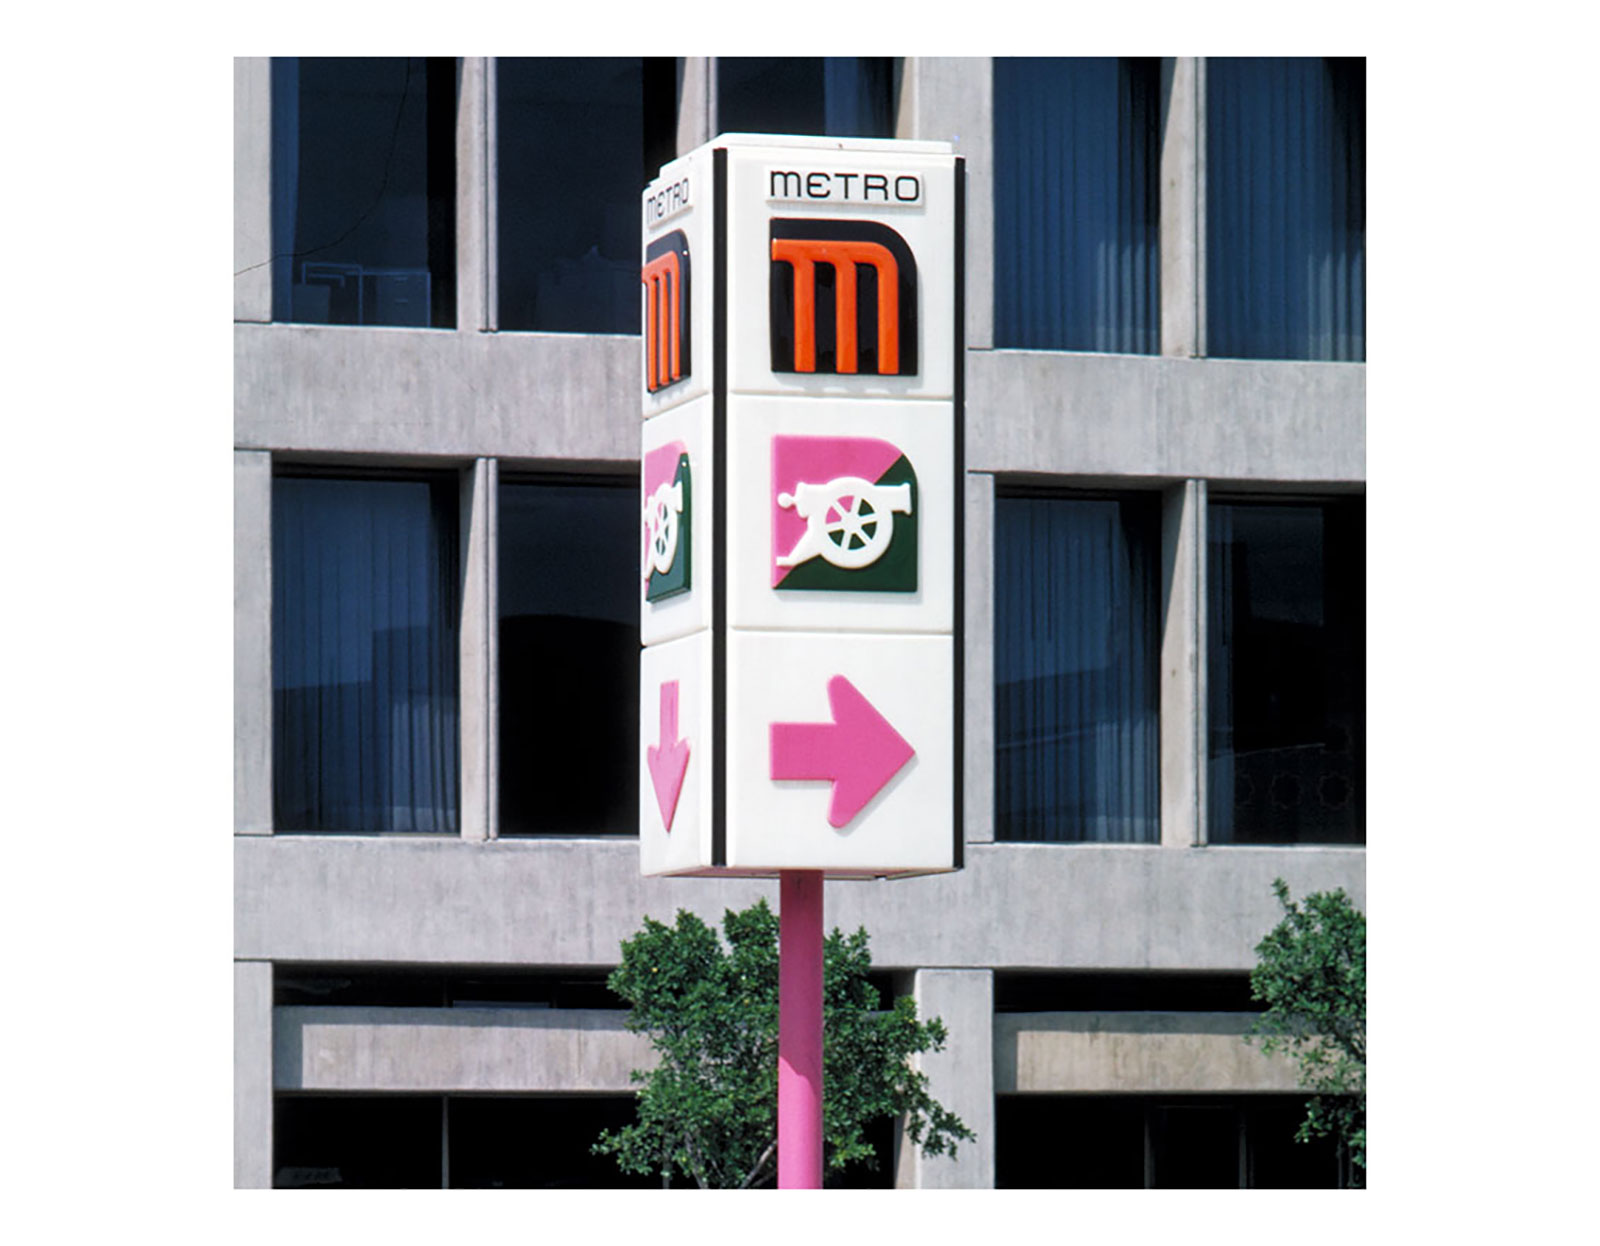 Metro sign. Don't be afraid to use it, it is safe.